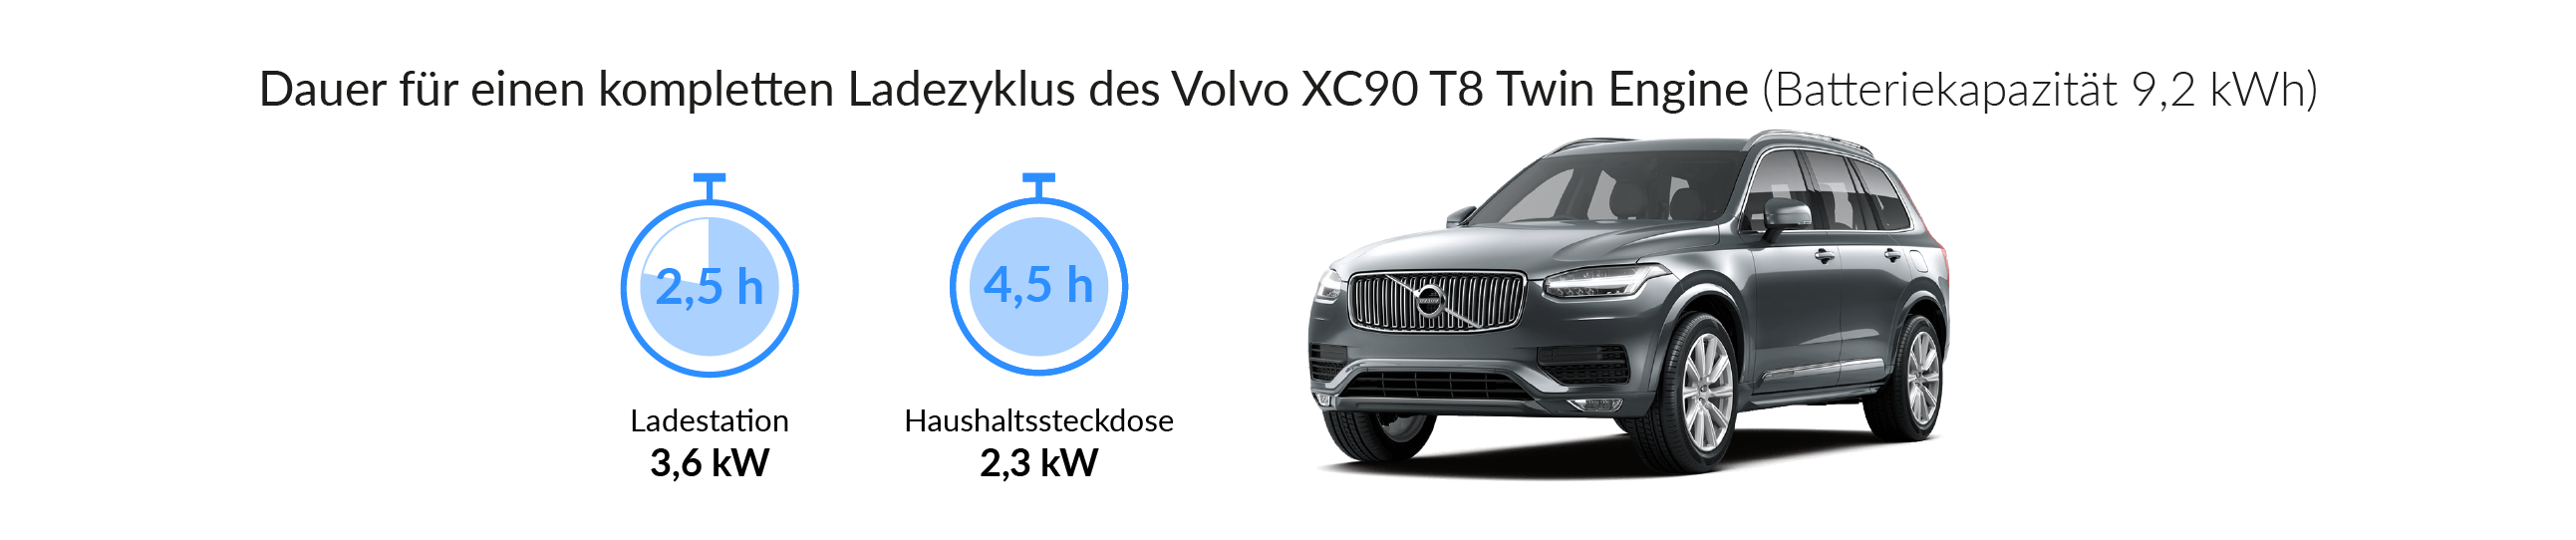 Ladezeiten des Volvo XC90 T8 Twin Engine